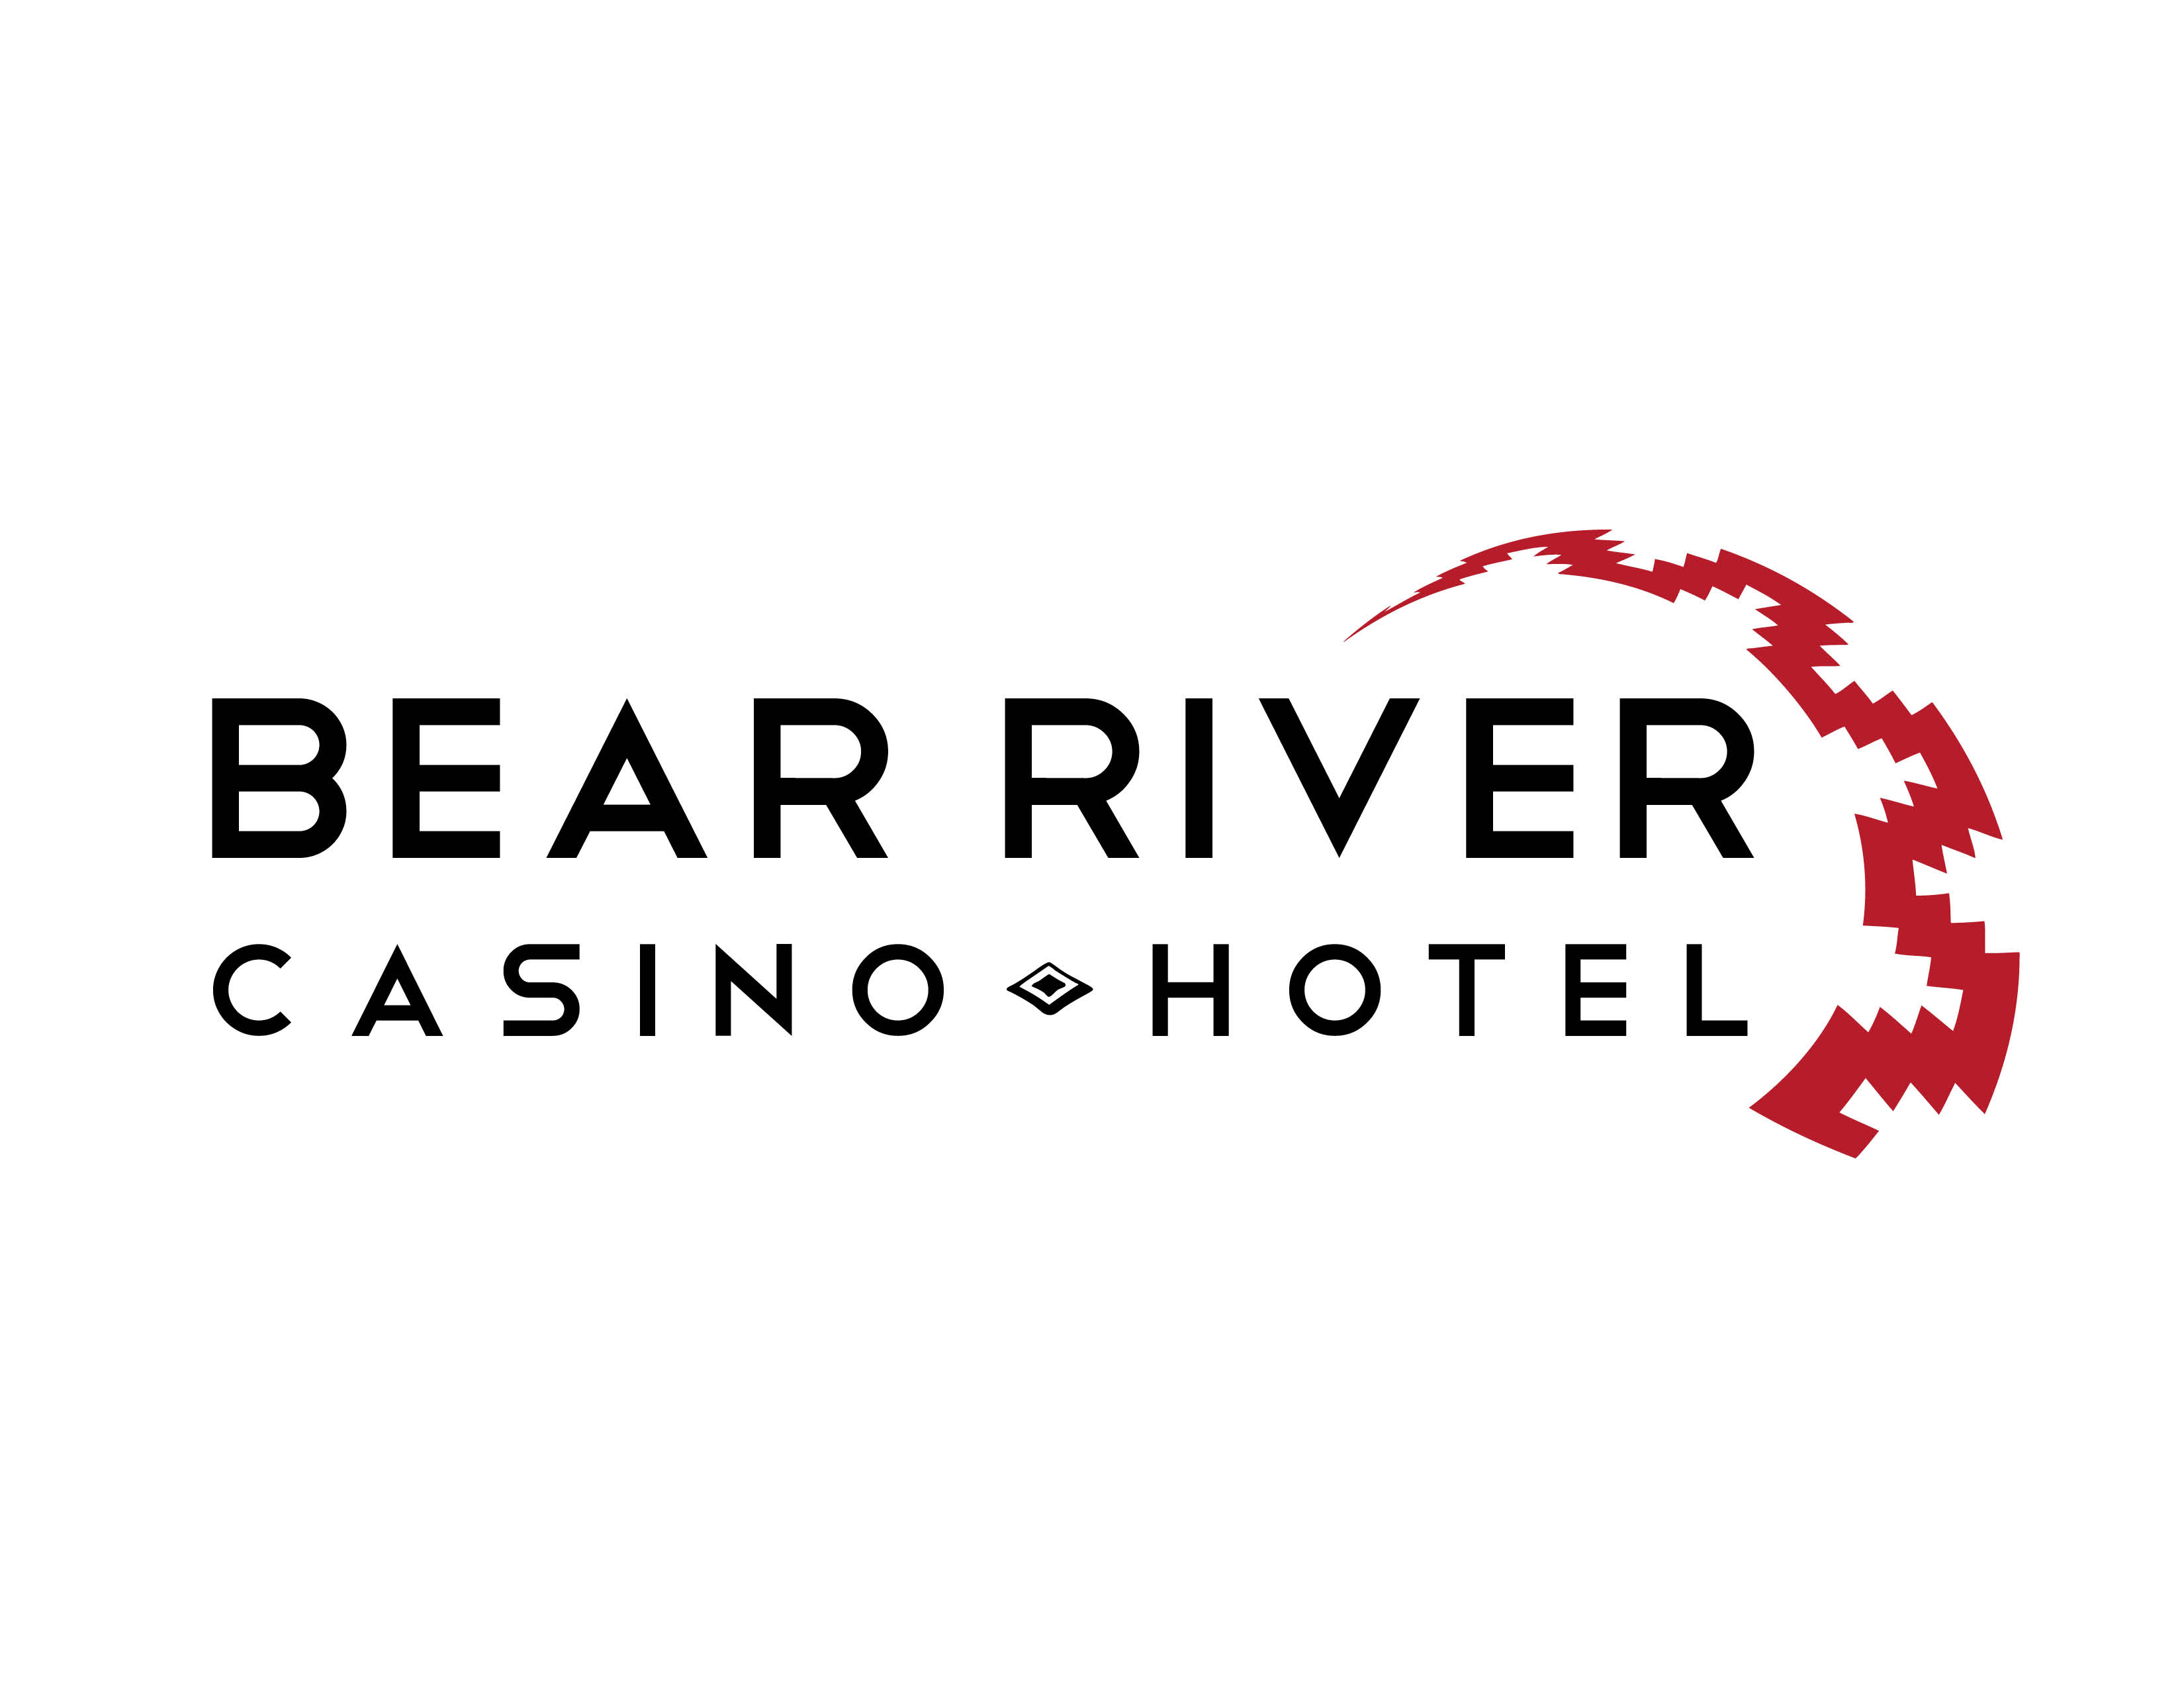 Bear river casino casino and niagara